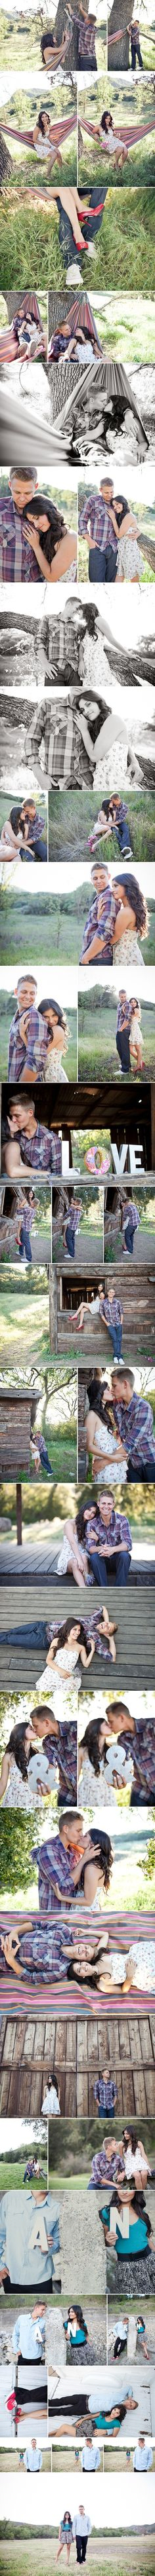 Cute engagement shots, already have some of these ideas.